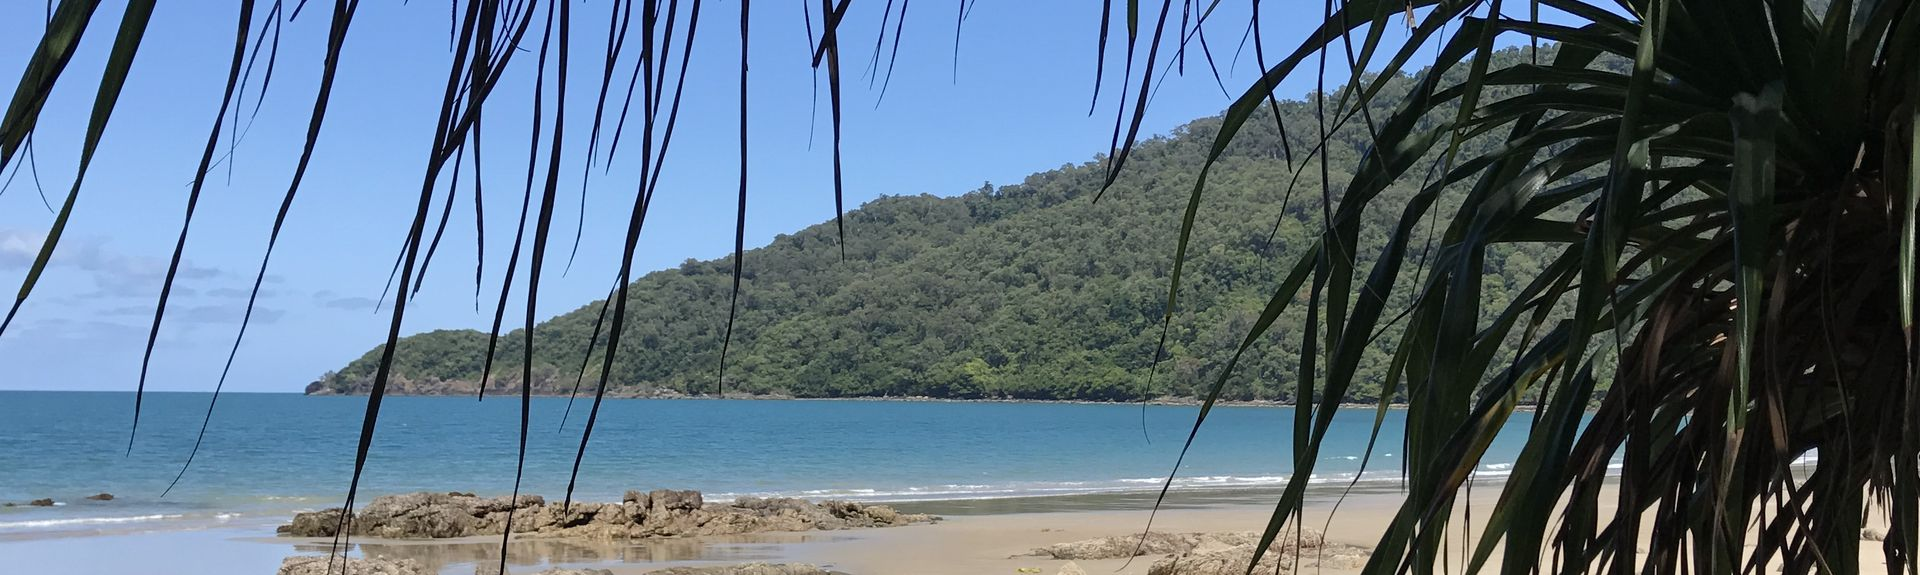 Cape Tribulation, Cape Tribulation, Queensland, Australia